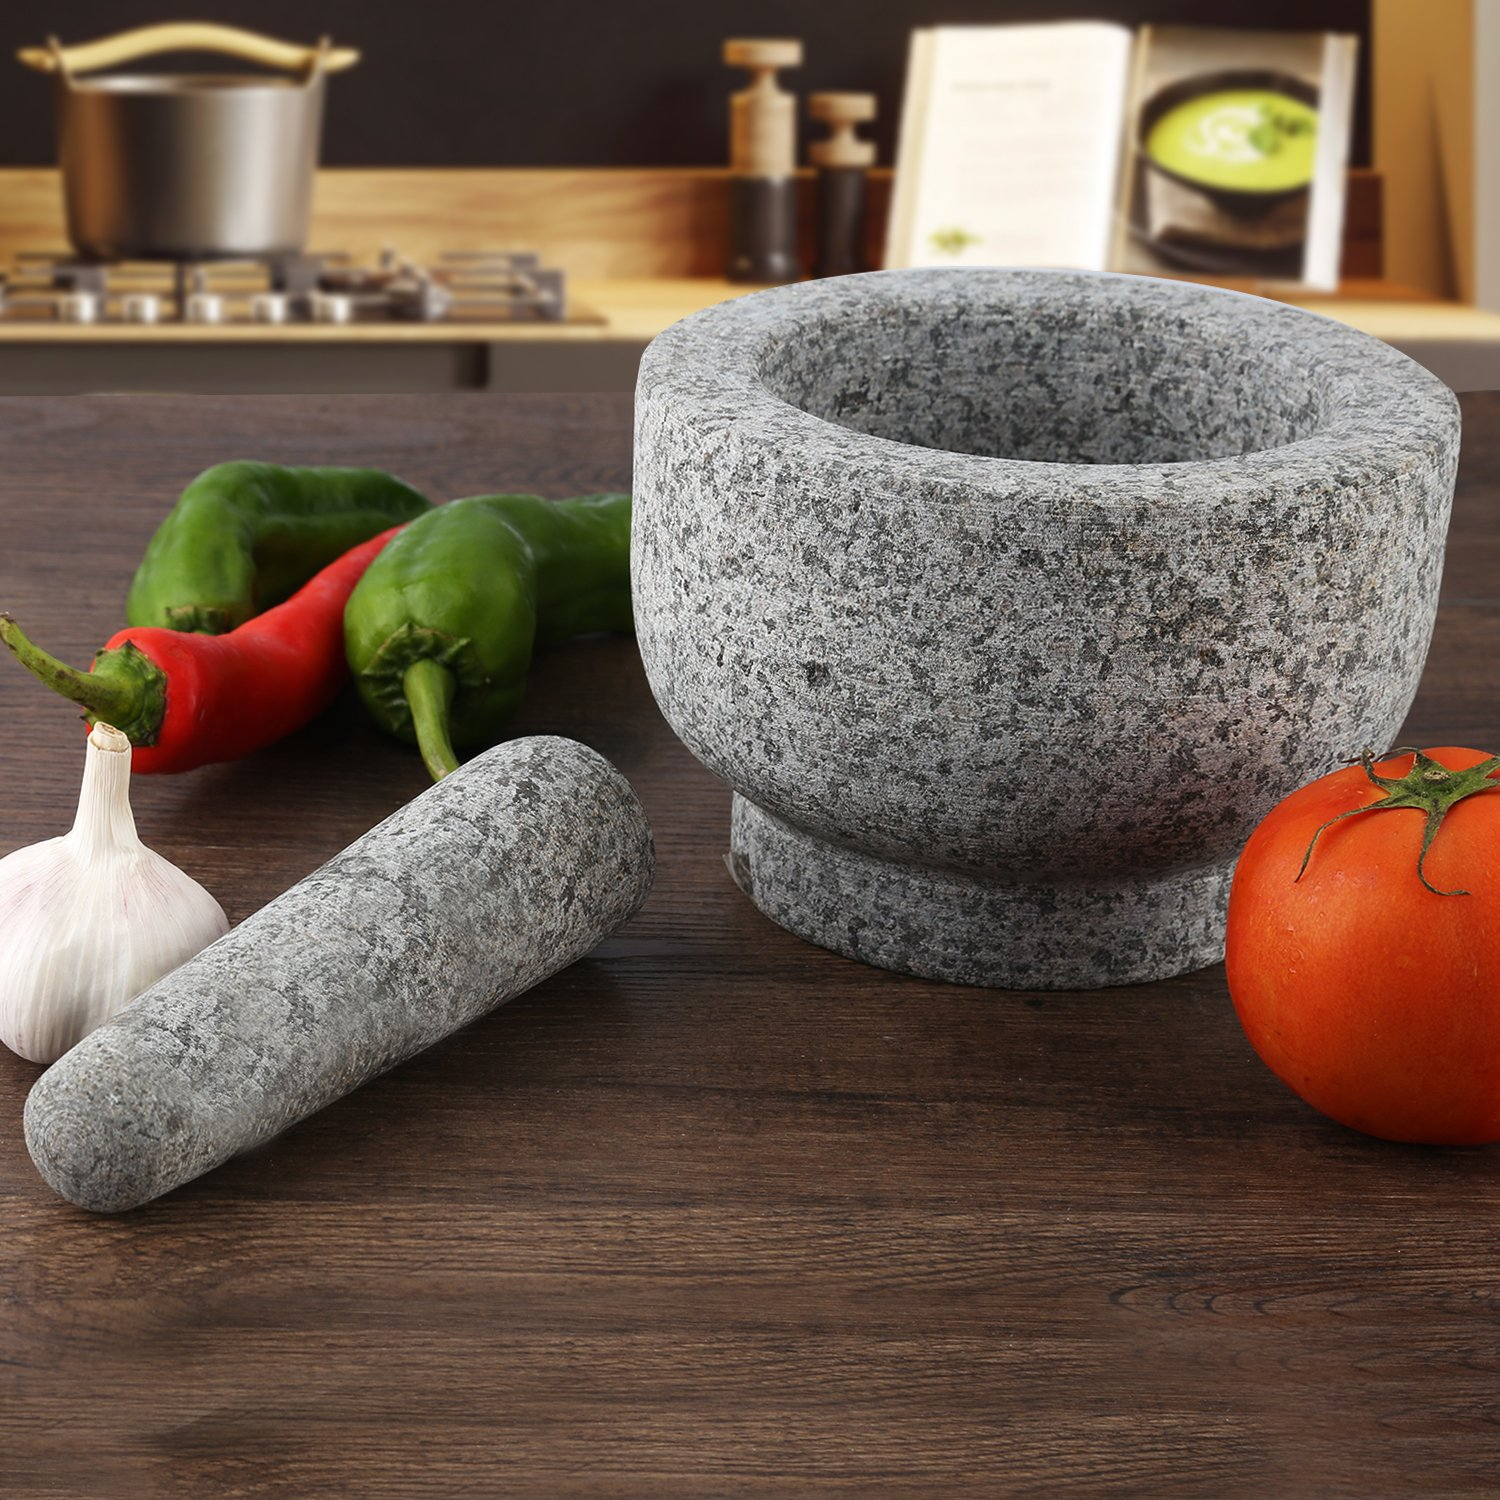 AntTech Granite Mortar and Pestle Gray Mortar Make Fresh Flavor Spice Herb Grinder Tool - 6 Inch Diameter